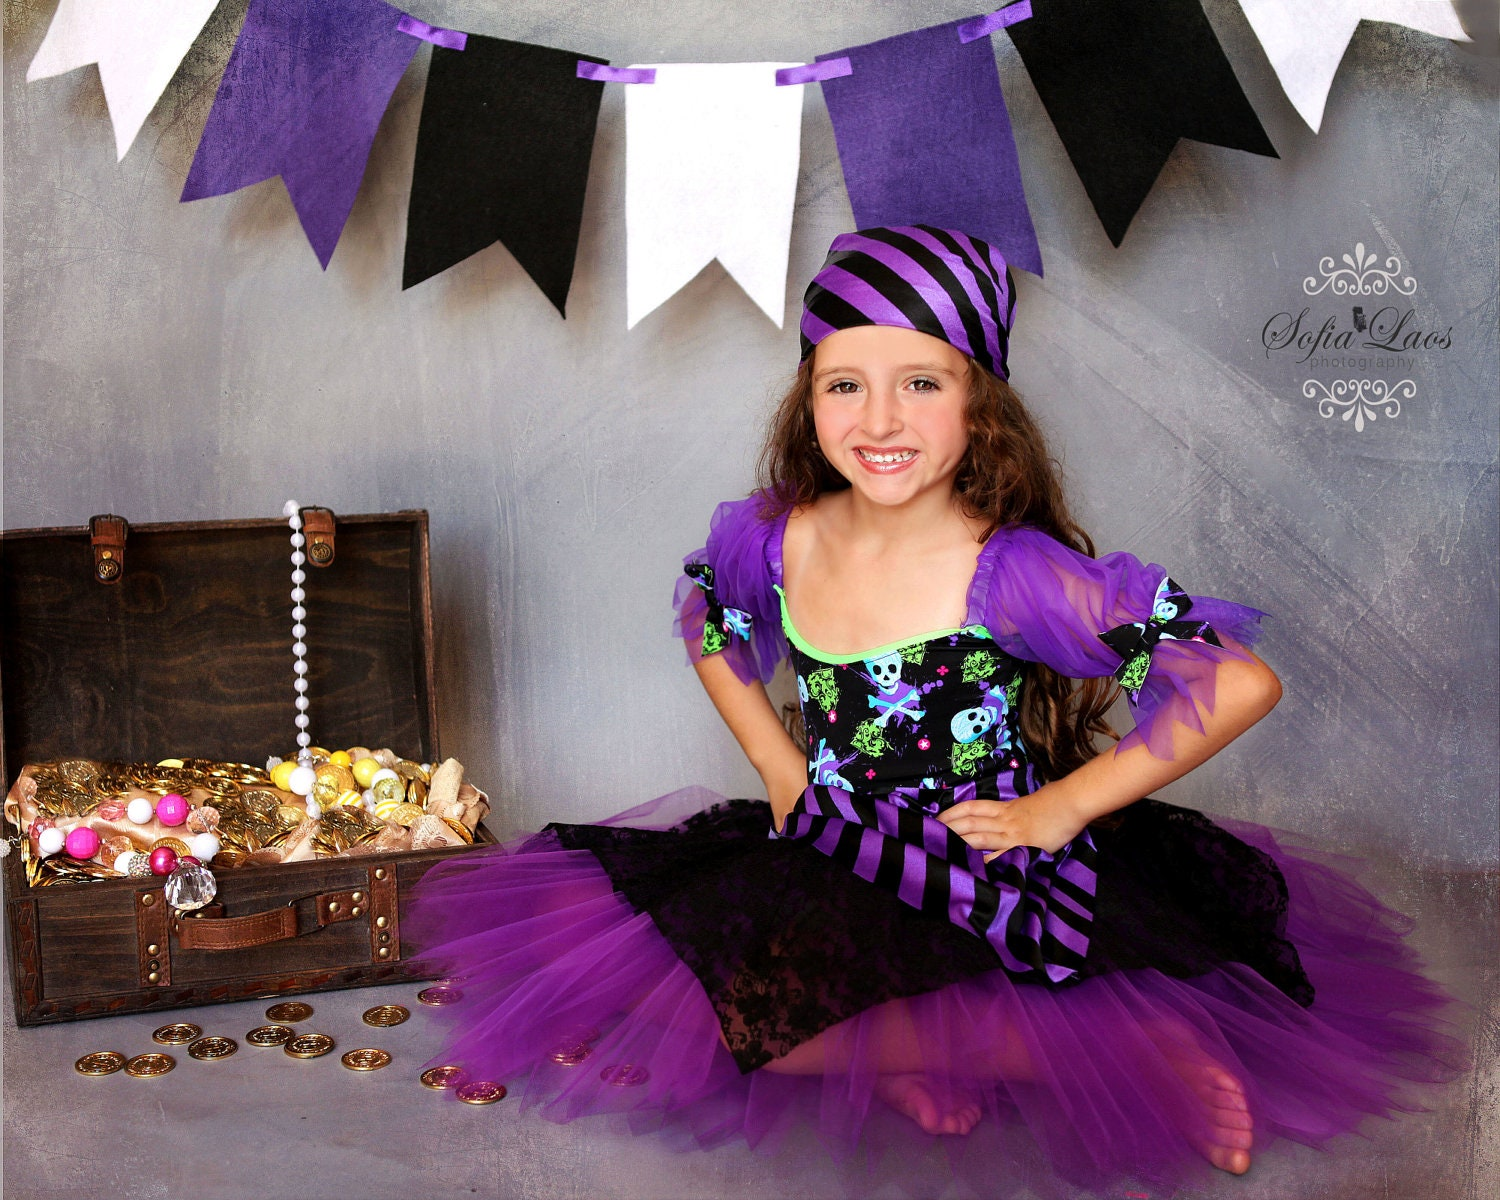 Pirate costume 12 Custom Boutique purple  Pirate skull tutu Halloween costume